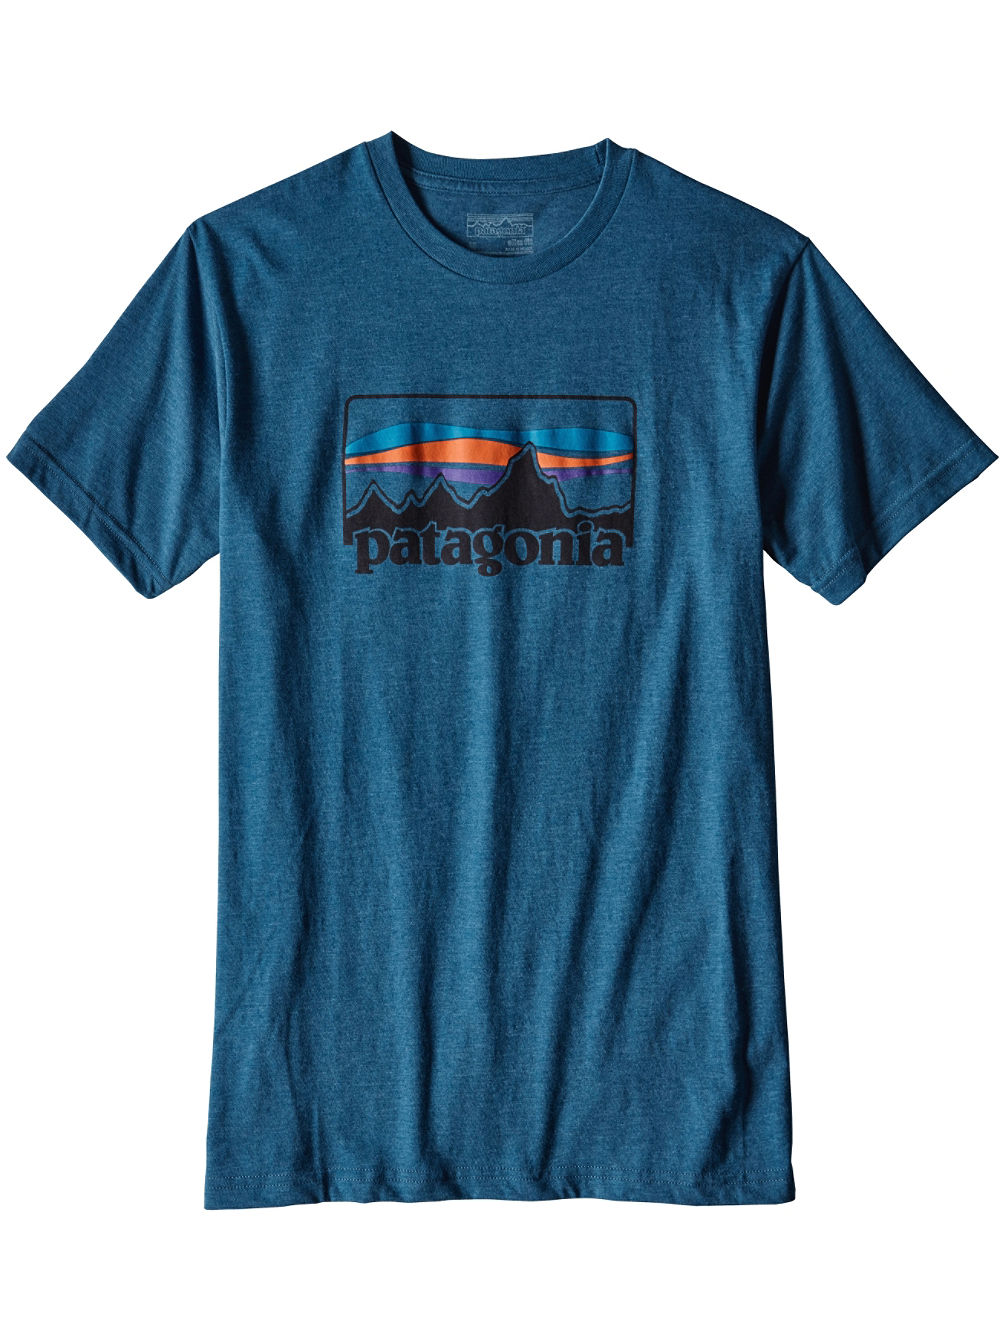 Buy patagonia 73 logo t shirt online at blue for Where to order shirts with logos